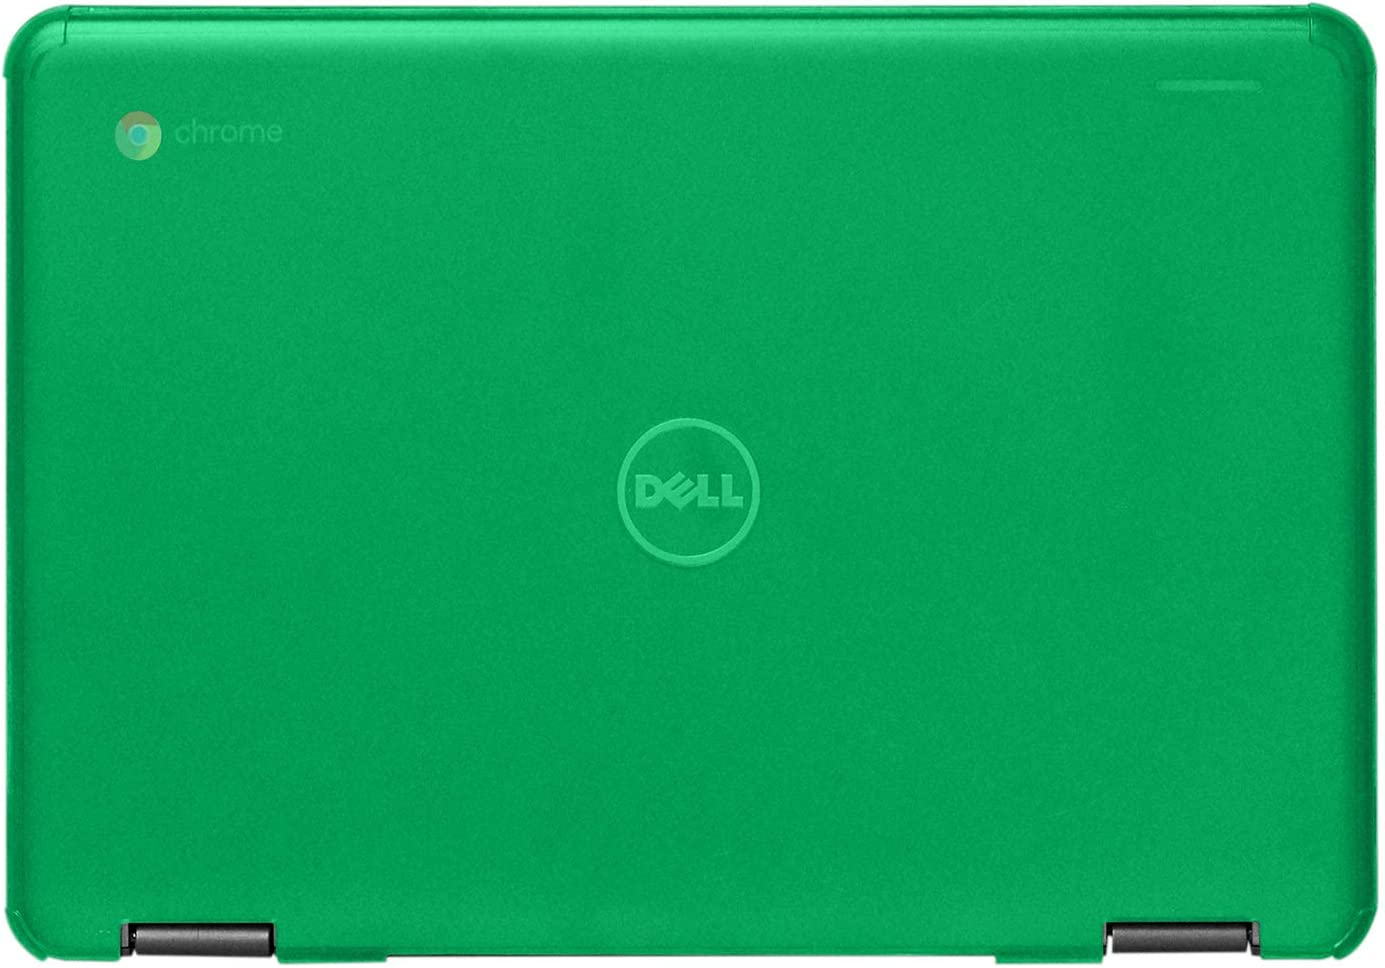 "mCover Hard Shell Case for 11.6"" Dell Chromebook 11 3181 2-in-1 Series Laptop (NOT Compatible with 210-ACDU / 3120/3180 / 3189/5190 Series) - Dell-C11-3181 Green"